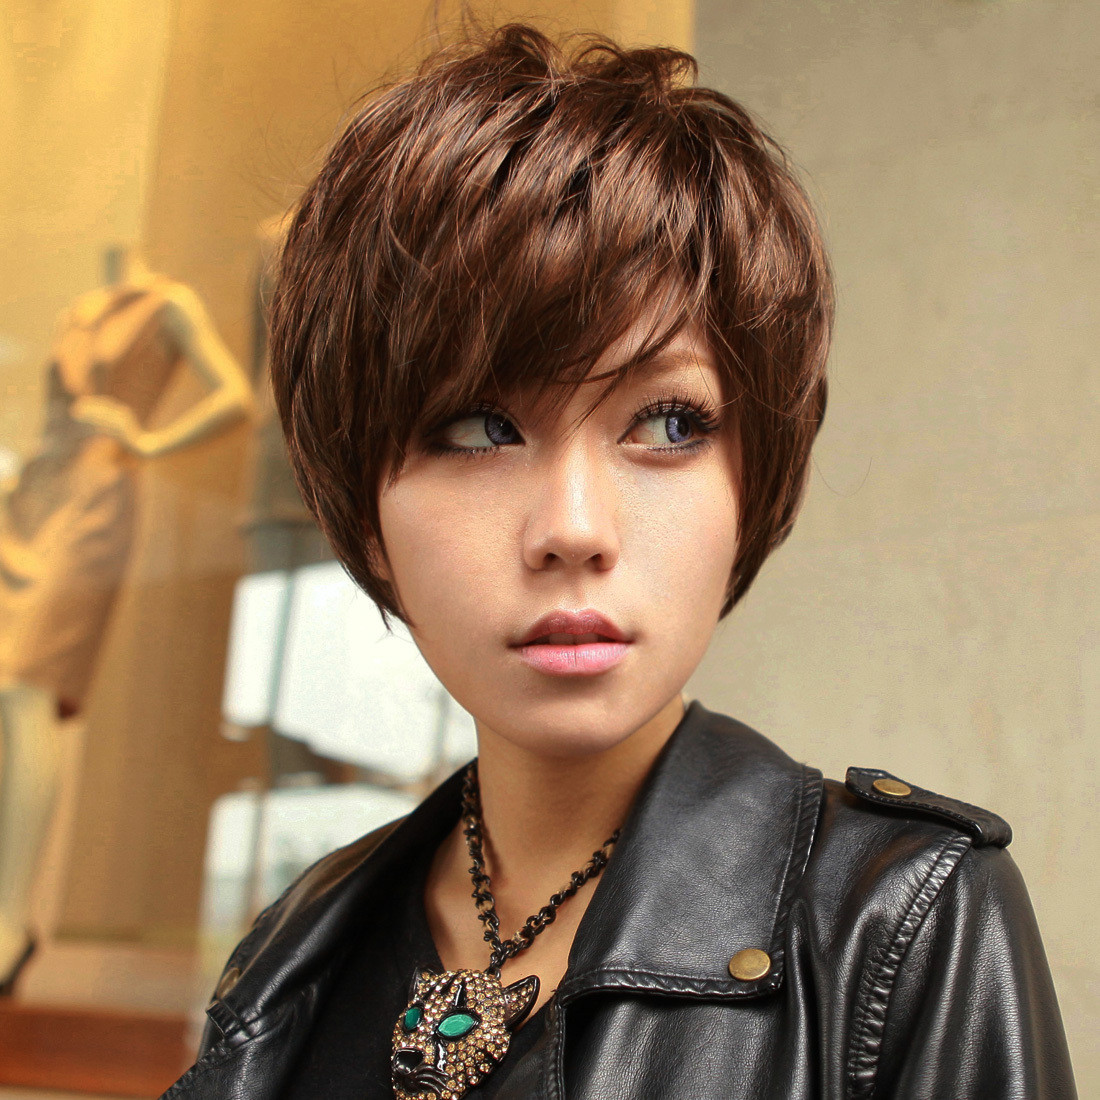 Best ideas about Anime Hairstyles Irl . Save or Pin Anime Hairstyles For Guys In Real Life – HD Wallpaper Gallery Now.